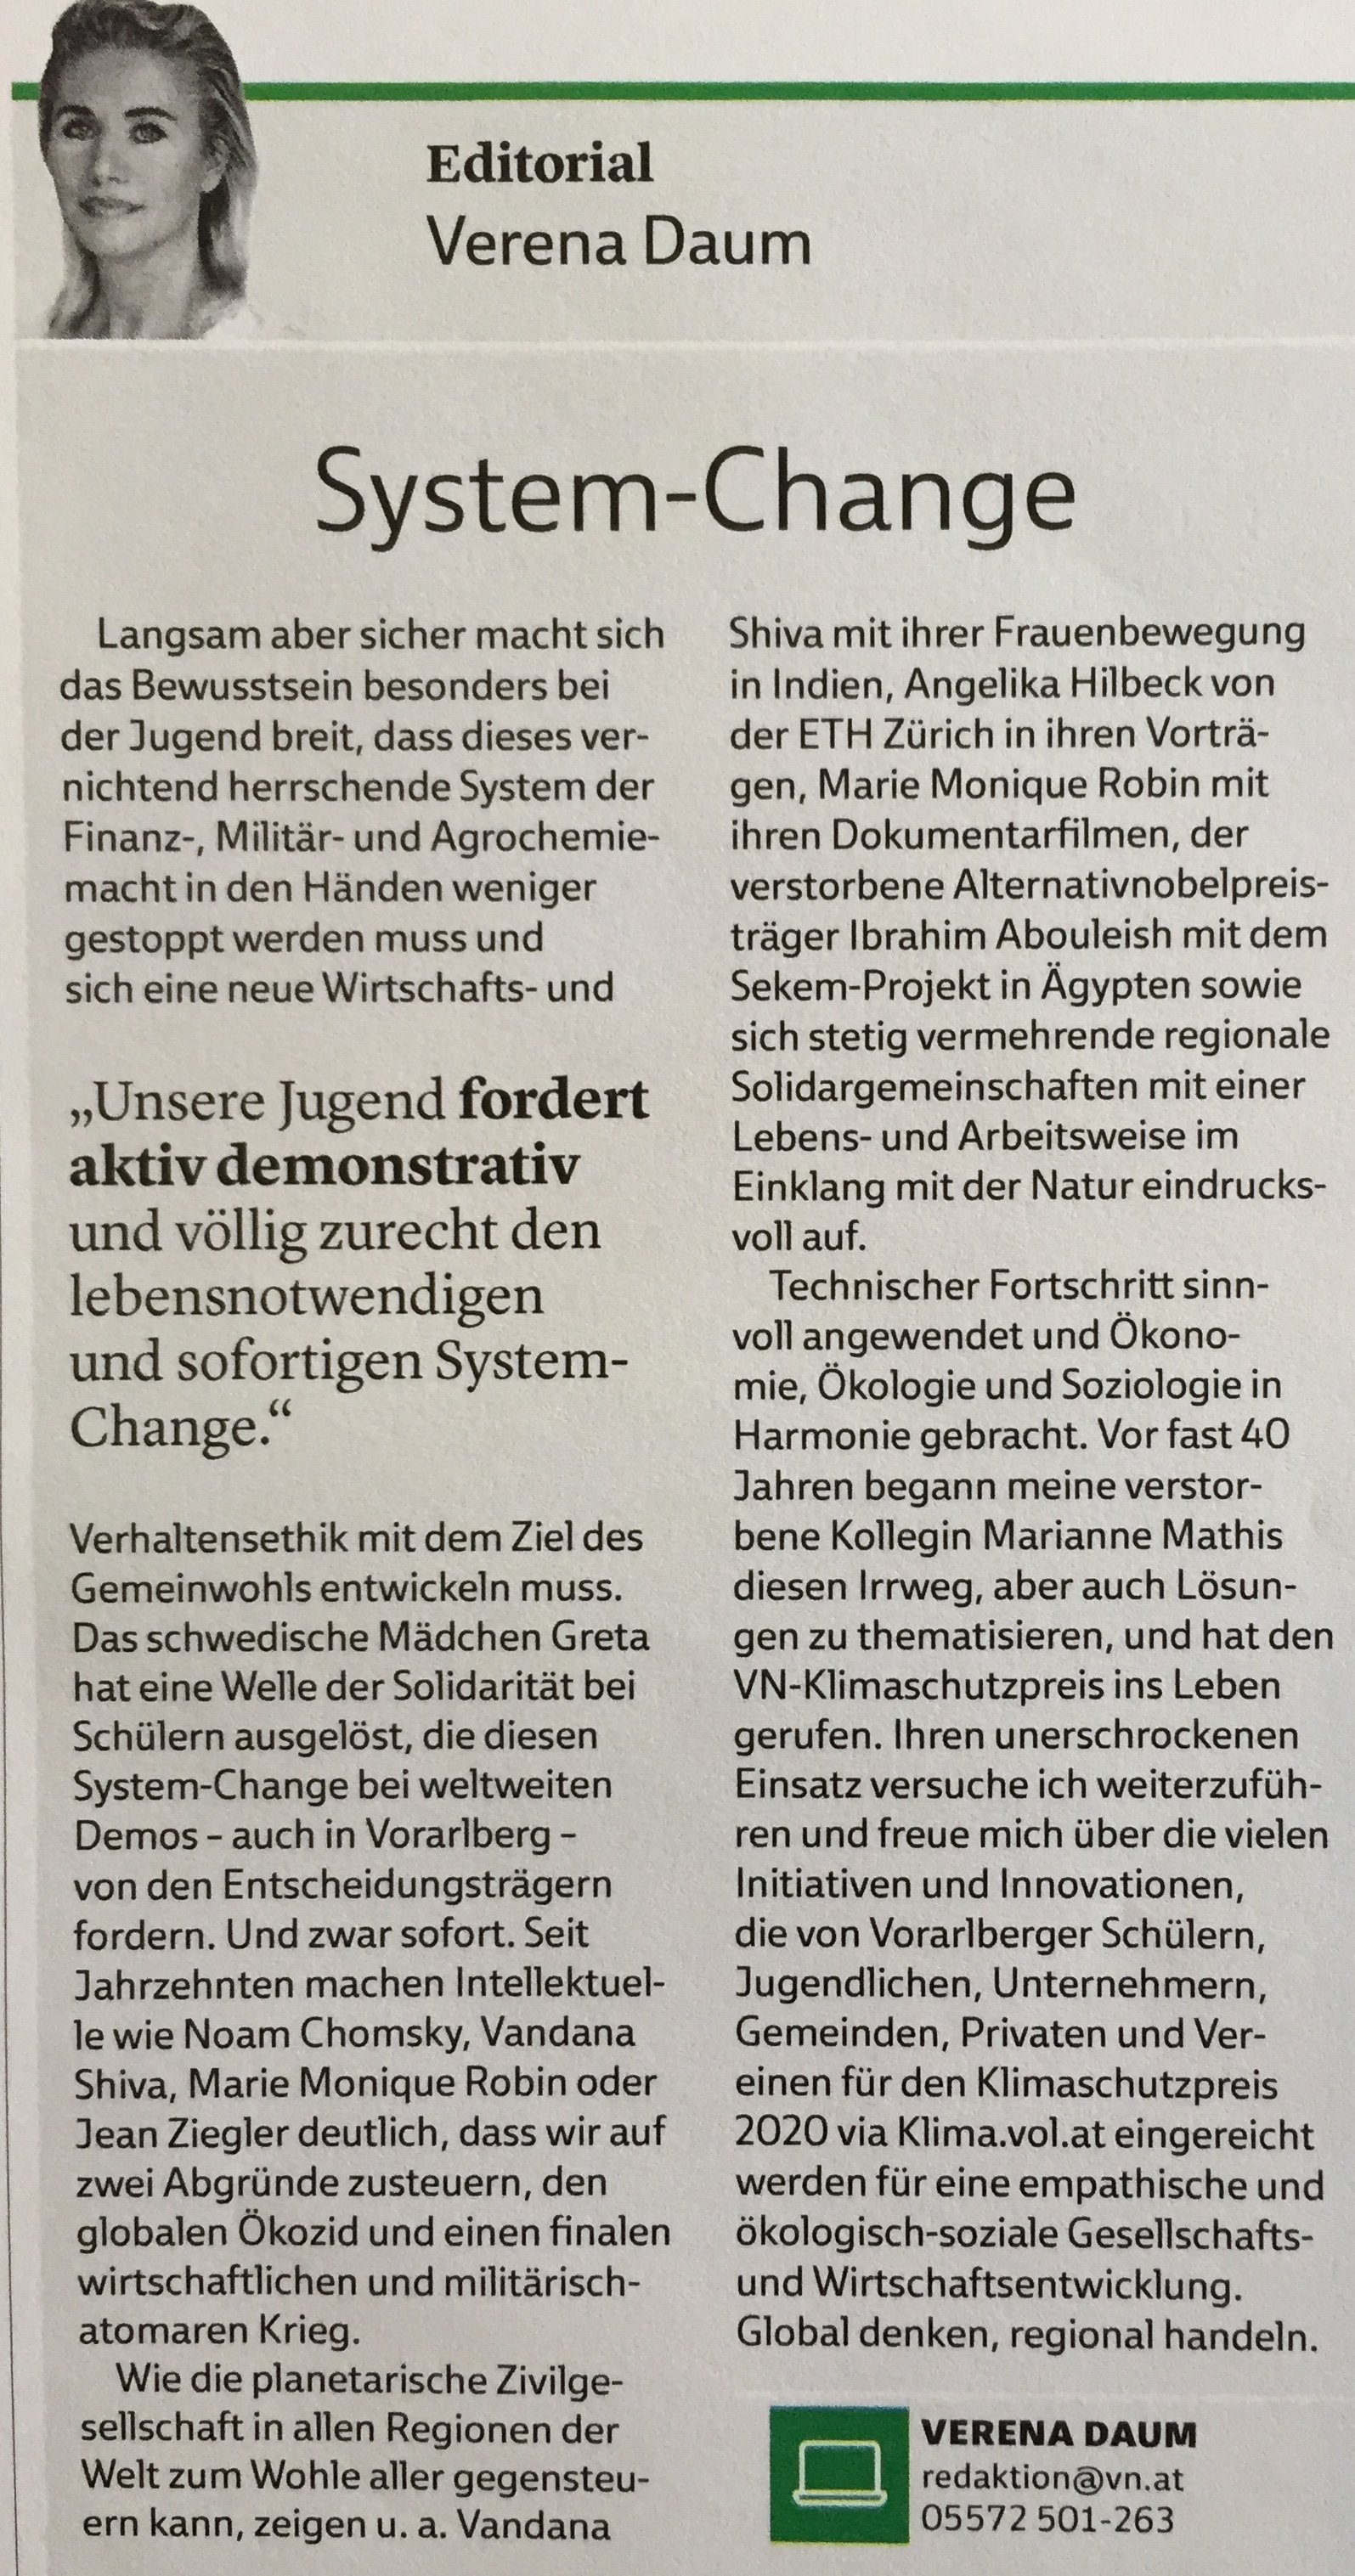 """our youth want's system change now"" editorial by Verena Daum in the magazine ""VN-Klimaschutzpreis 2020"" of Vorarlberger Nachrichten, www.progression.at, www.garden-eden.org"